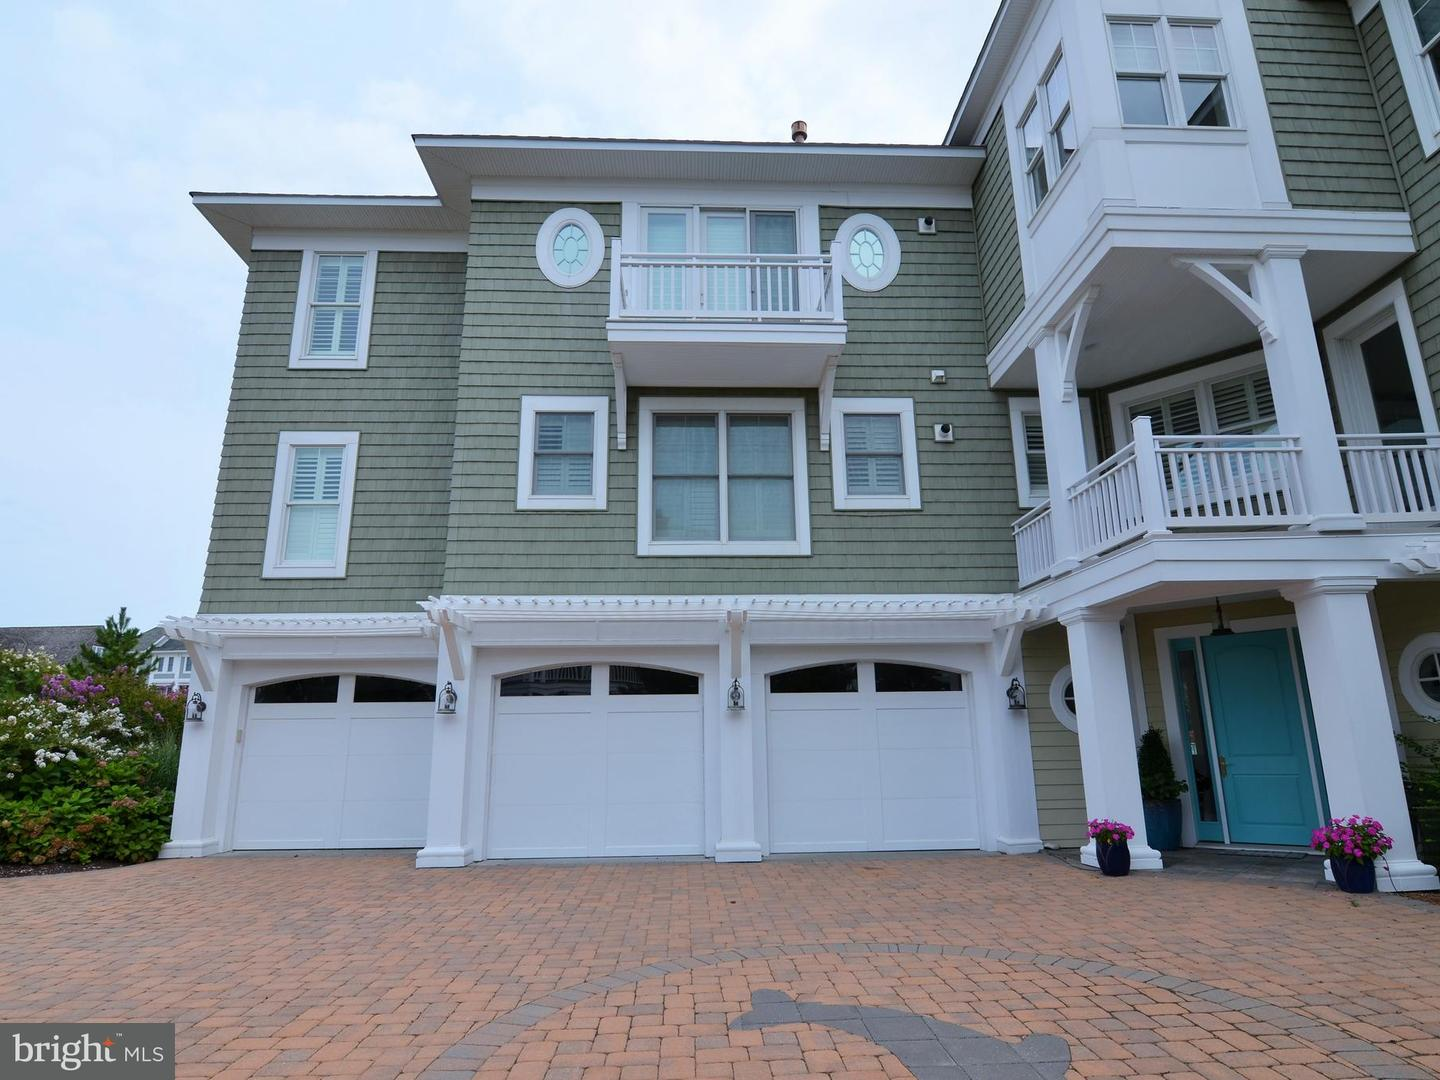 1002293530-300500805800-2018-09-25-15-08-24 31 Hall Ave | Rehoboth Beach, DE Real Estate For Sale | MLS# 1002293530  - Jack Lingo REALTOR